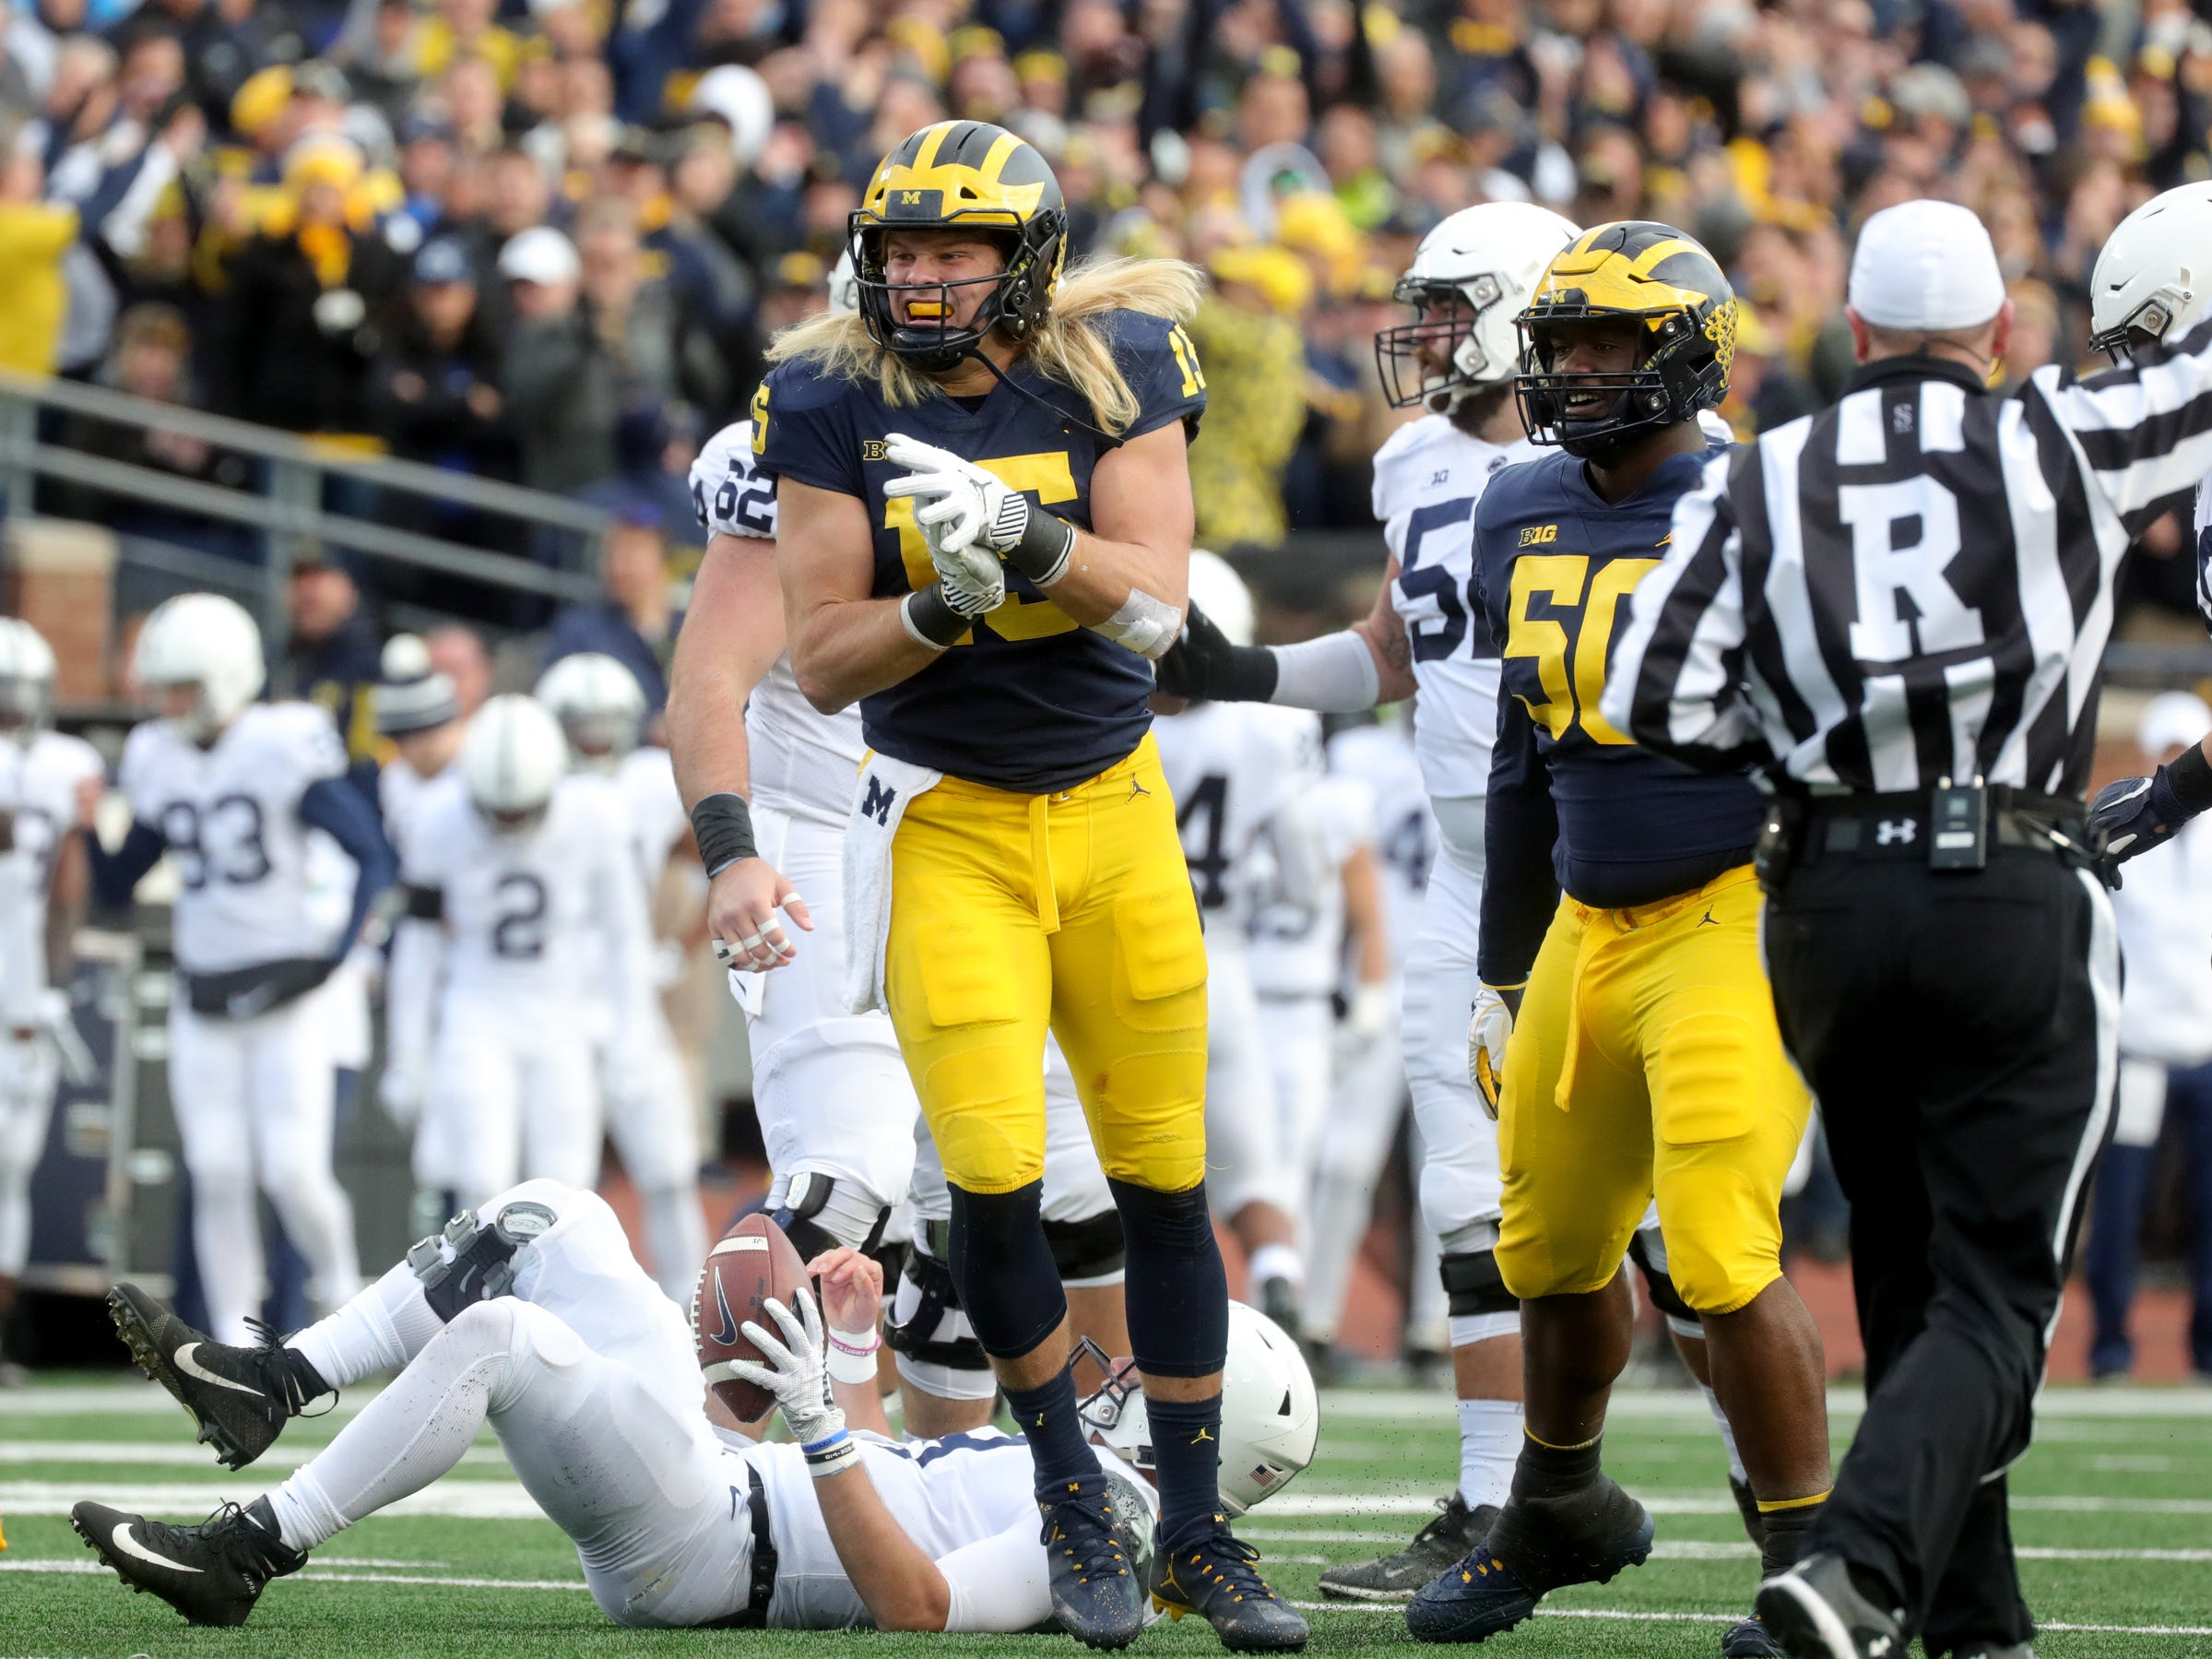 Michigan's Chase Winovich celebrates his sack of Penn State quarterback Trace McSorley during the first half Saturday, November 3, 2018 at Michigan Stadium in Ann Arbor.